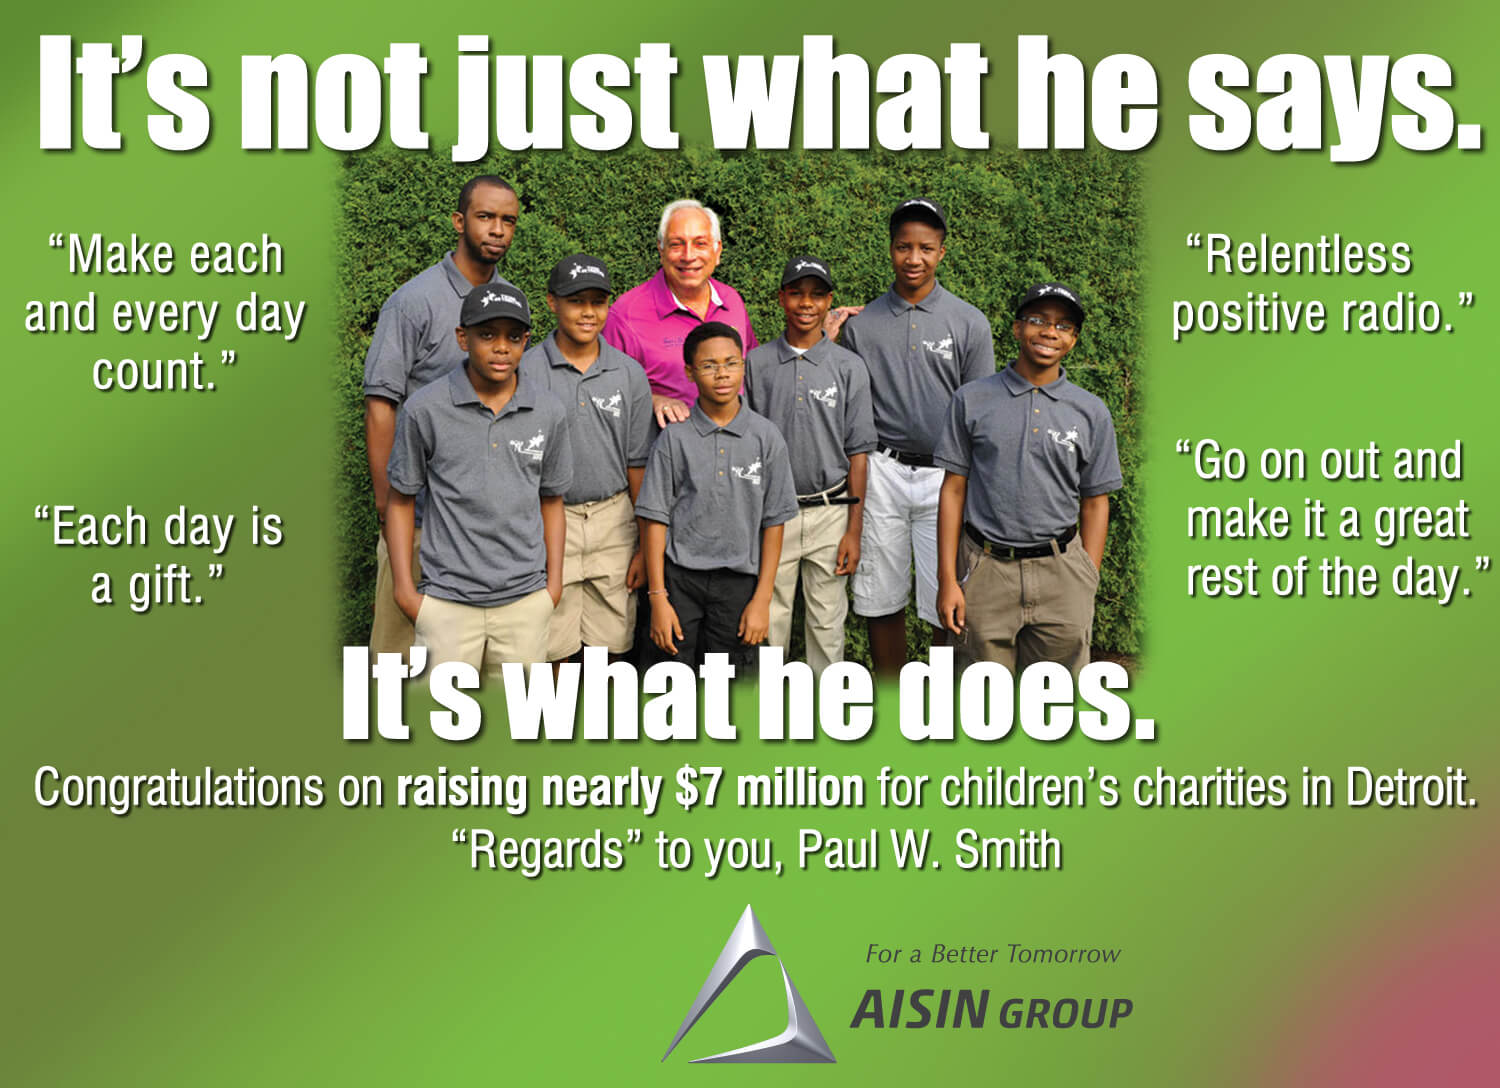 Aisin group for a better tomorrow